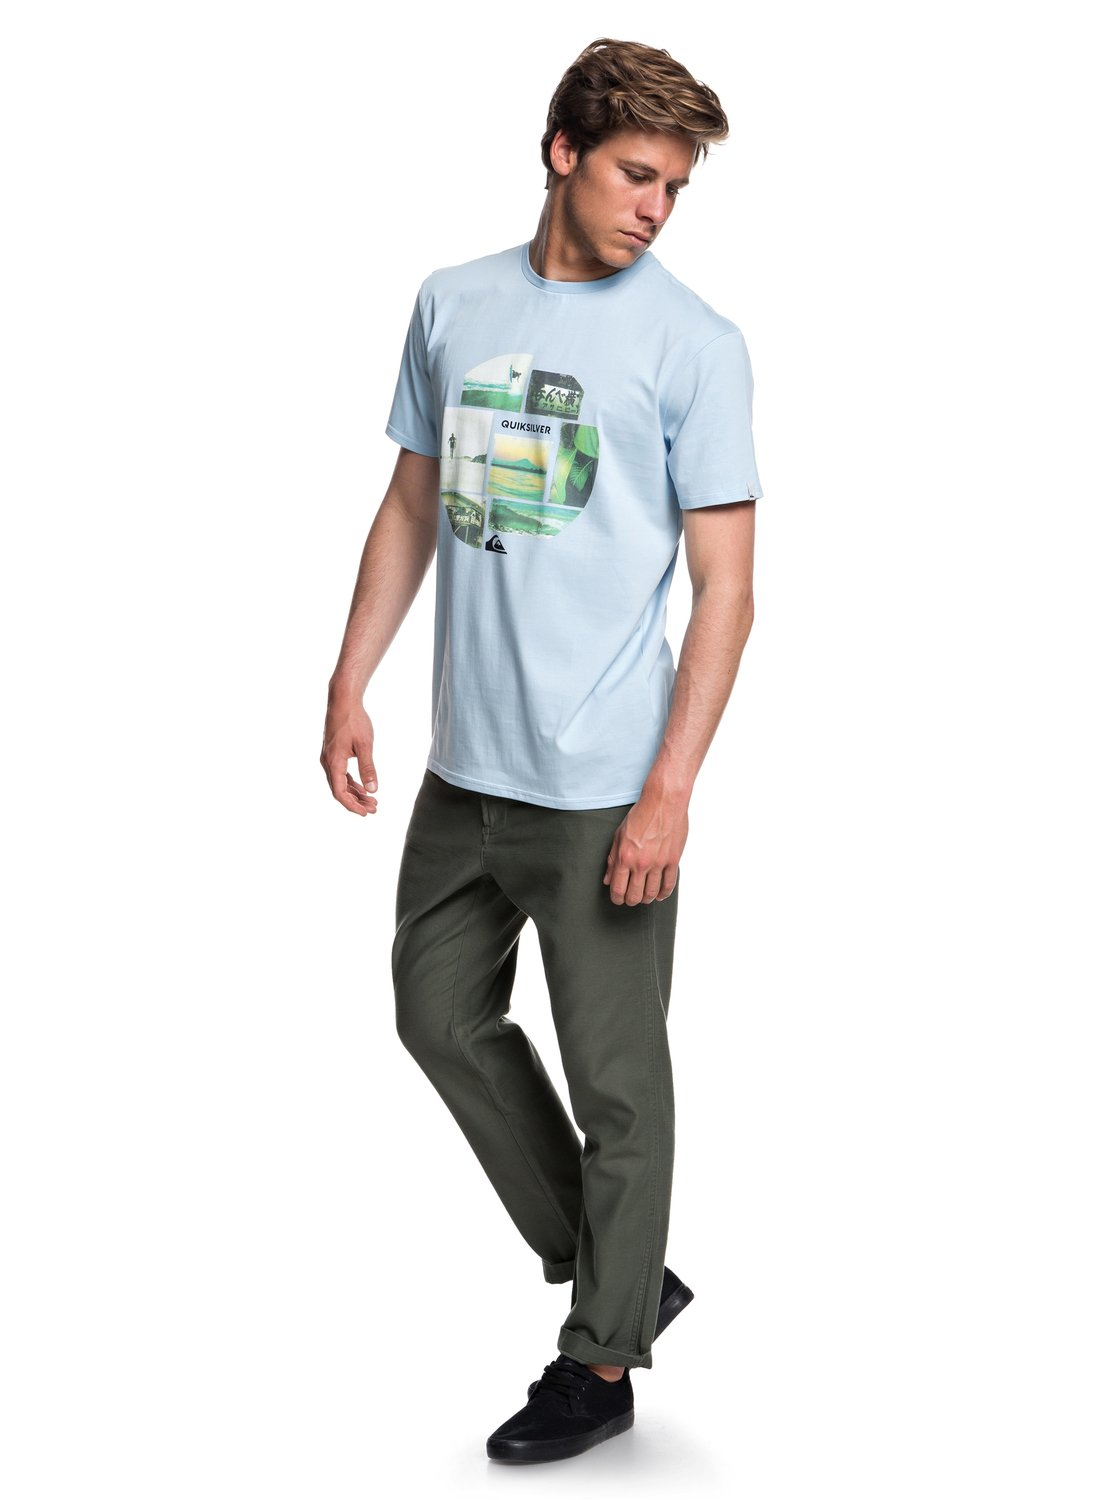 Quiksilver-Photo-Mix-Camiseta-para-Hombre-EQYZT05114 miniatura 2